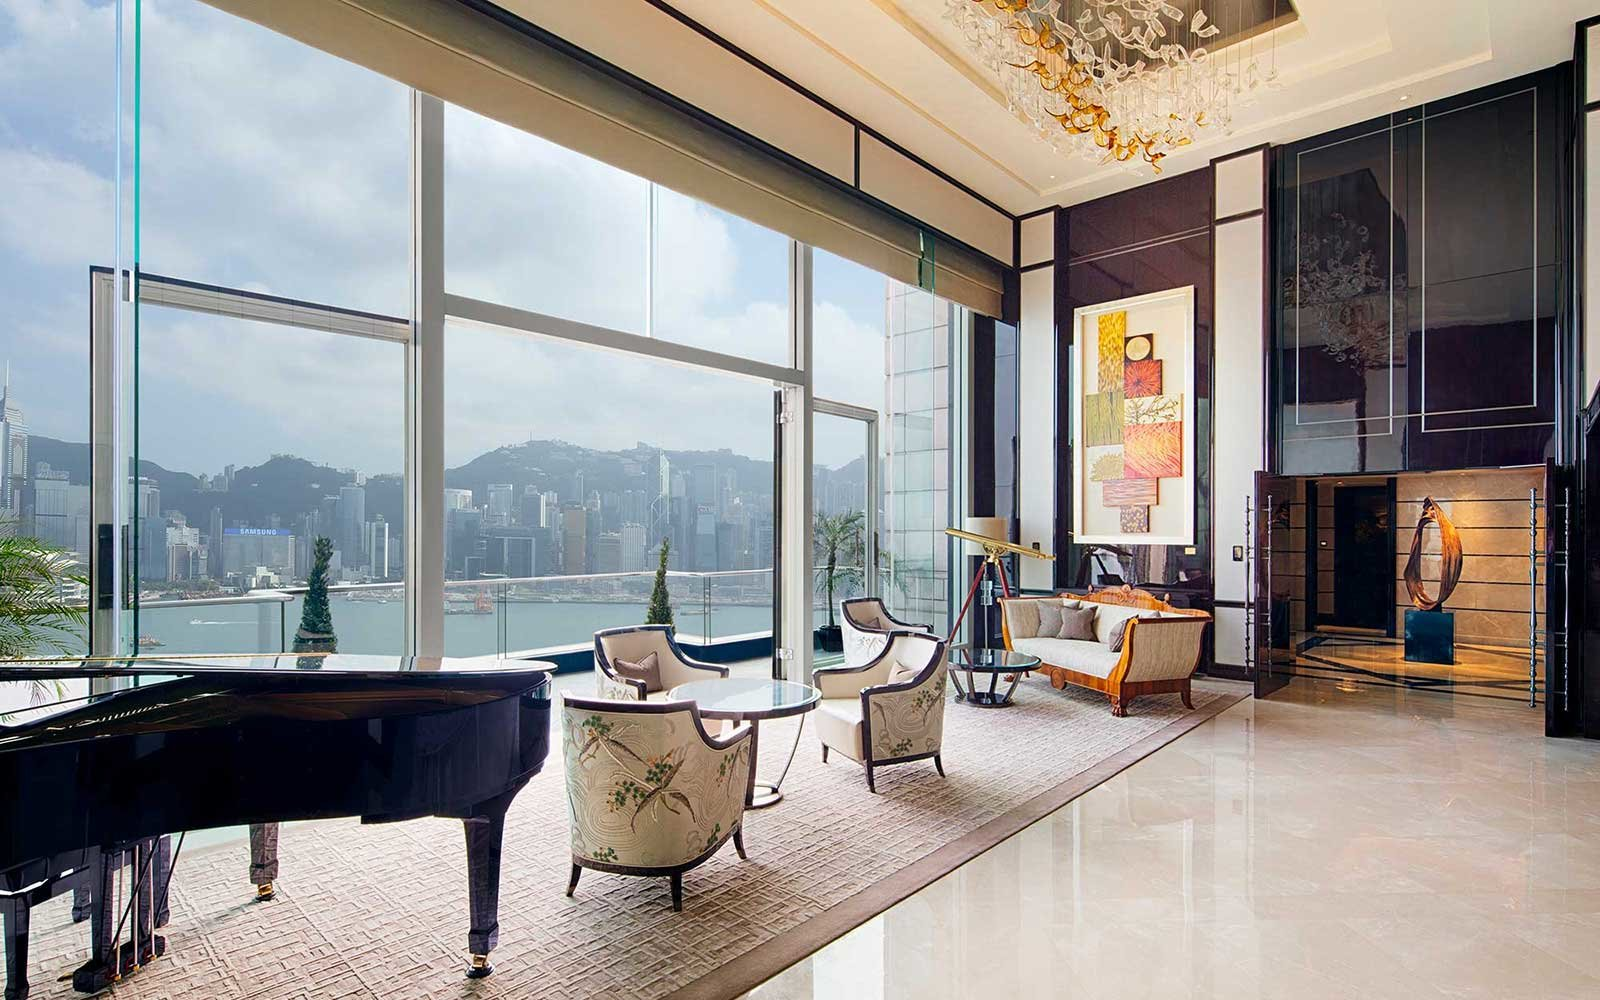 The Peninsula Hotel in Hong Kong